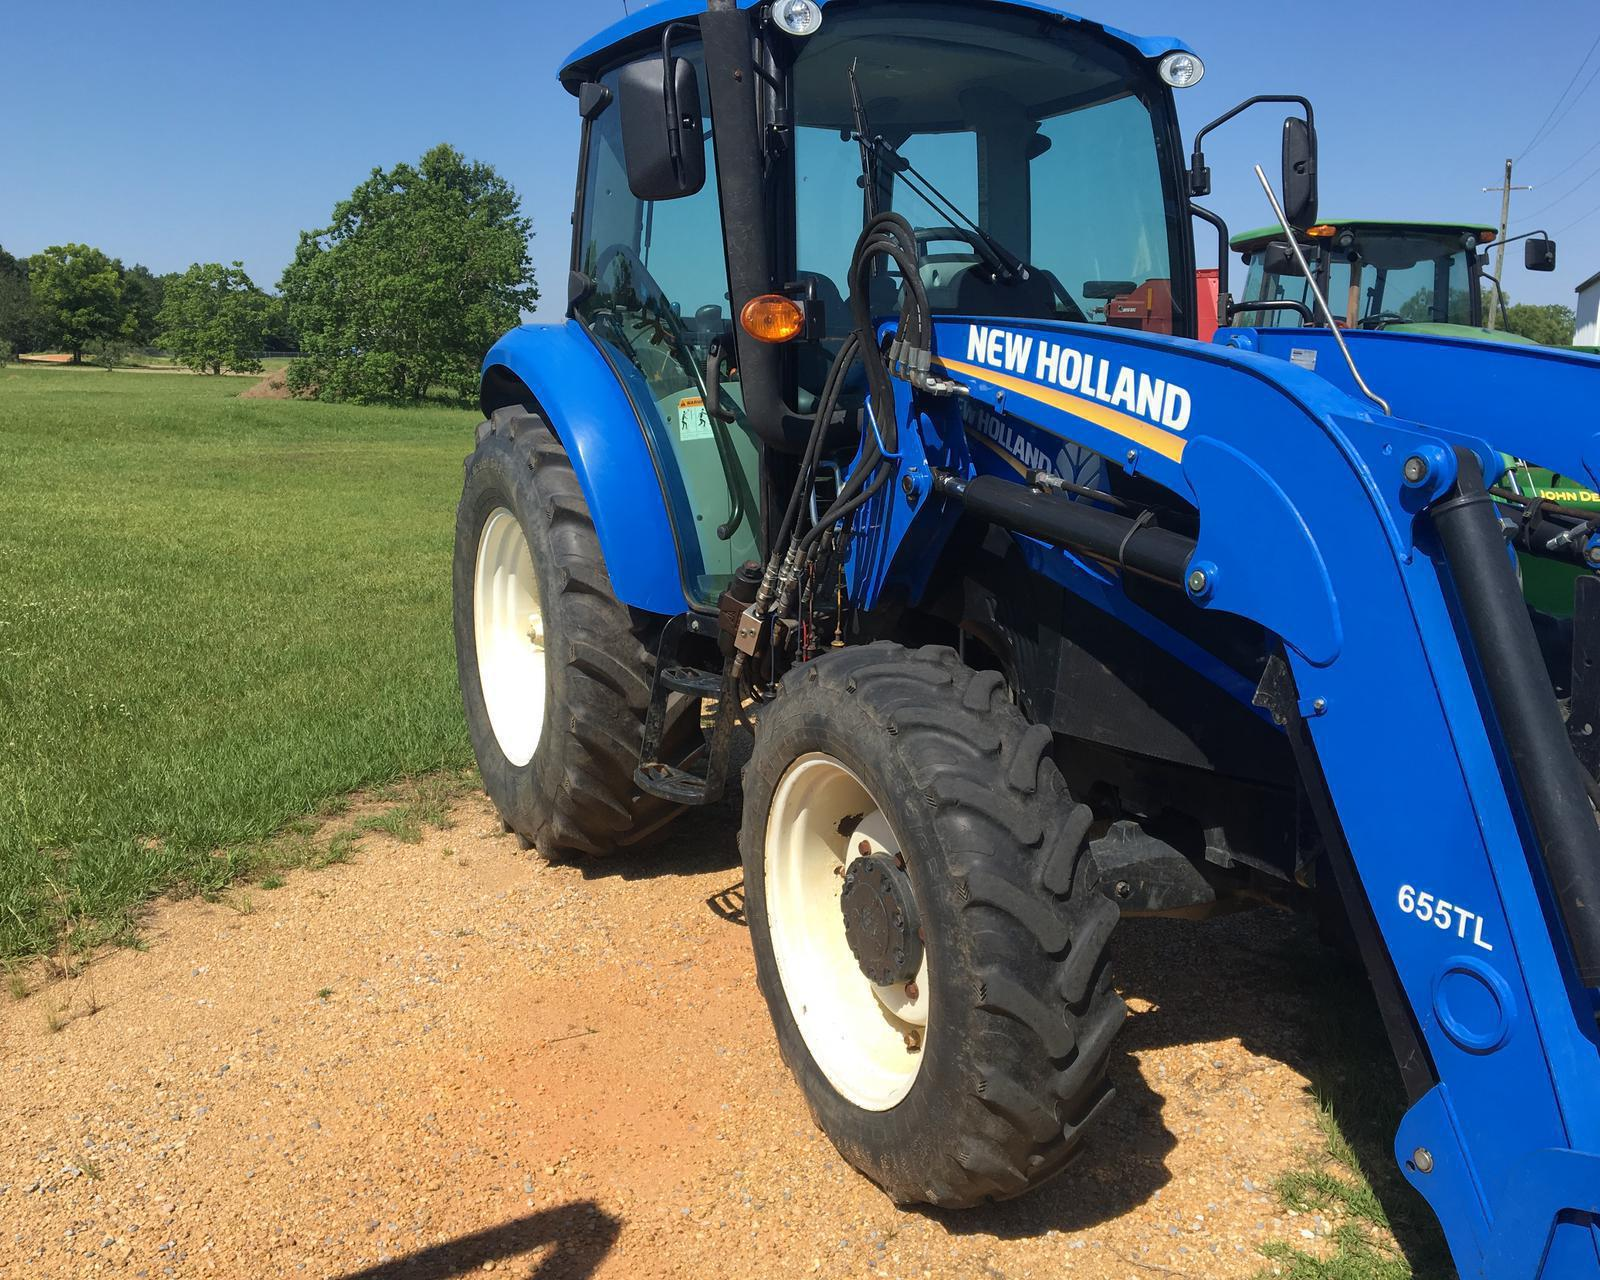 2014 New Holland Agriculture PowerStar T4 75 Cab